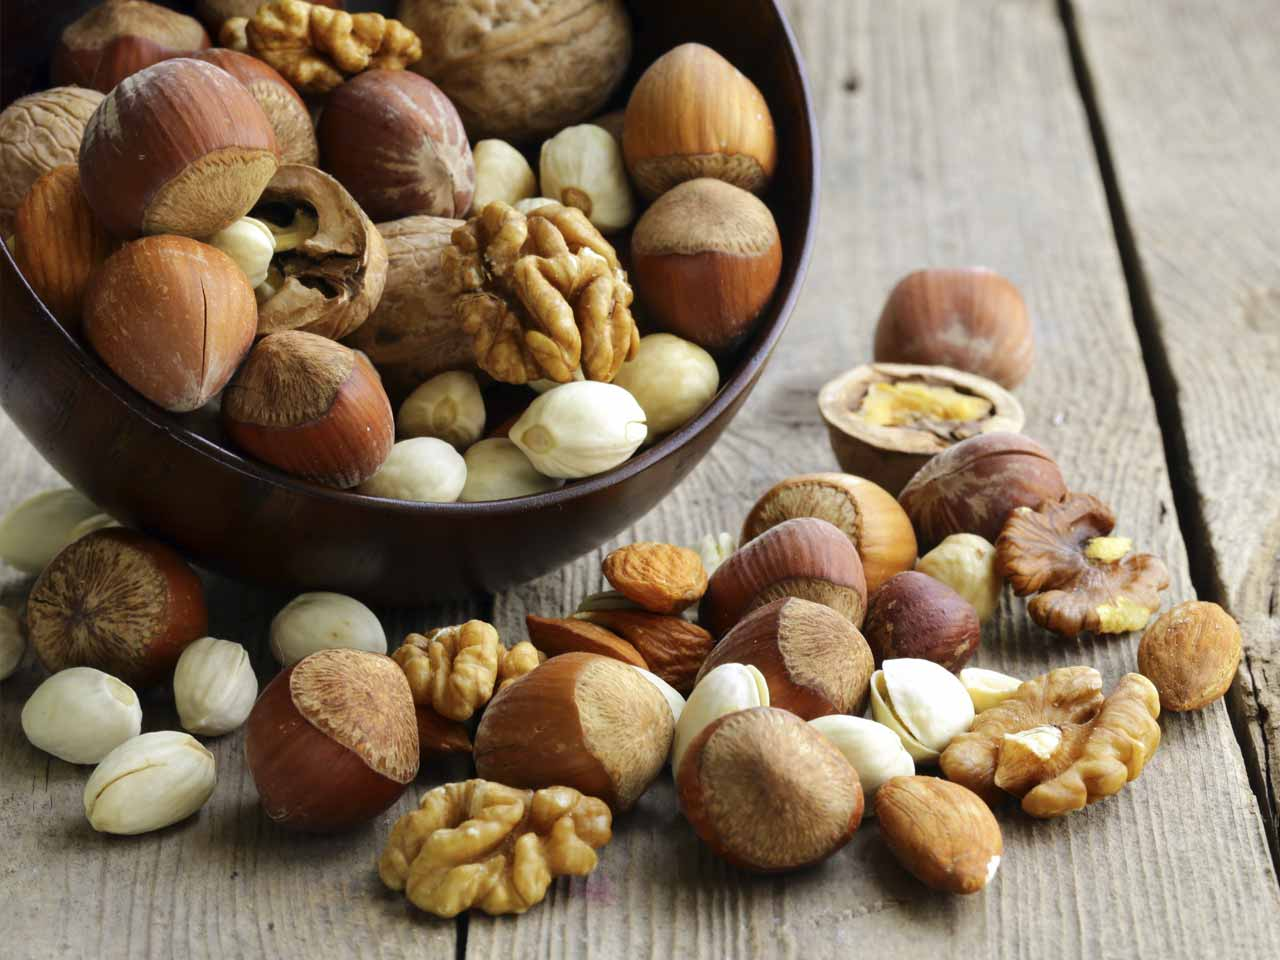 10 reasons to eat more nuts